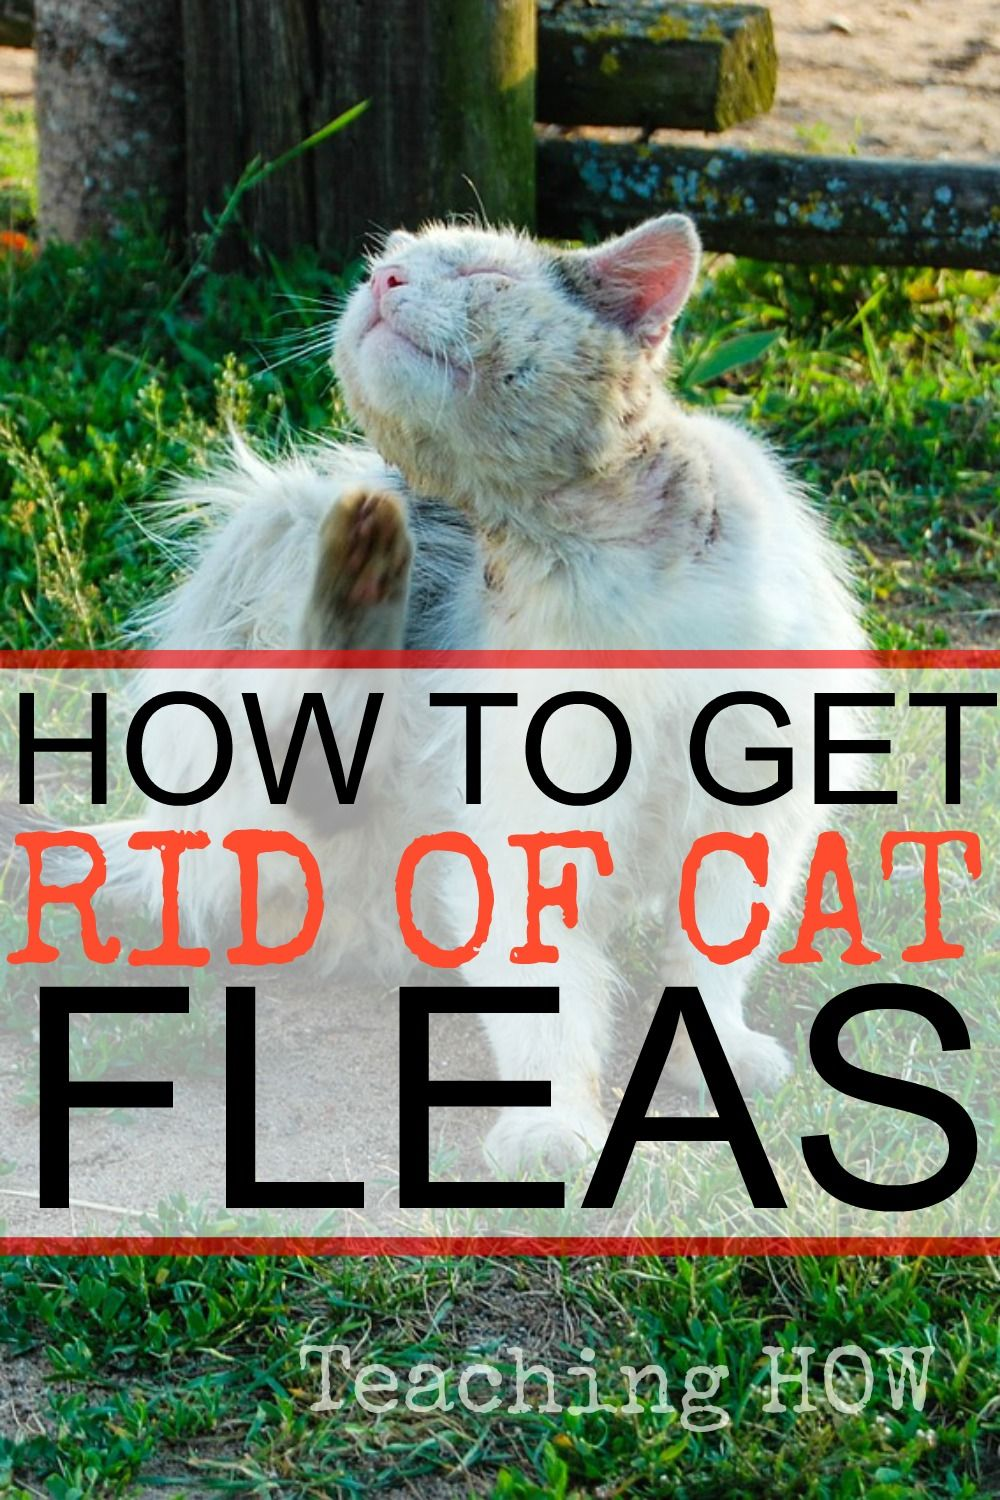 Pin by Teaching How How To Tips on Teaching How... Cat